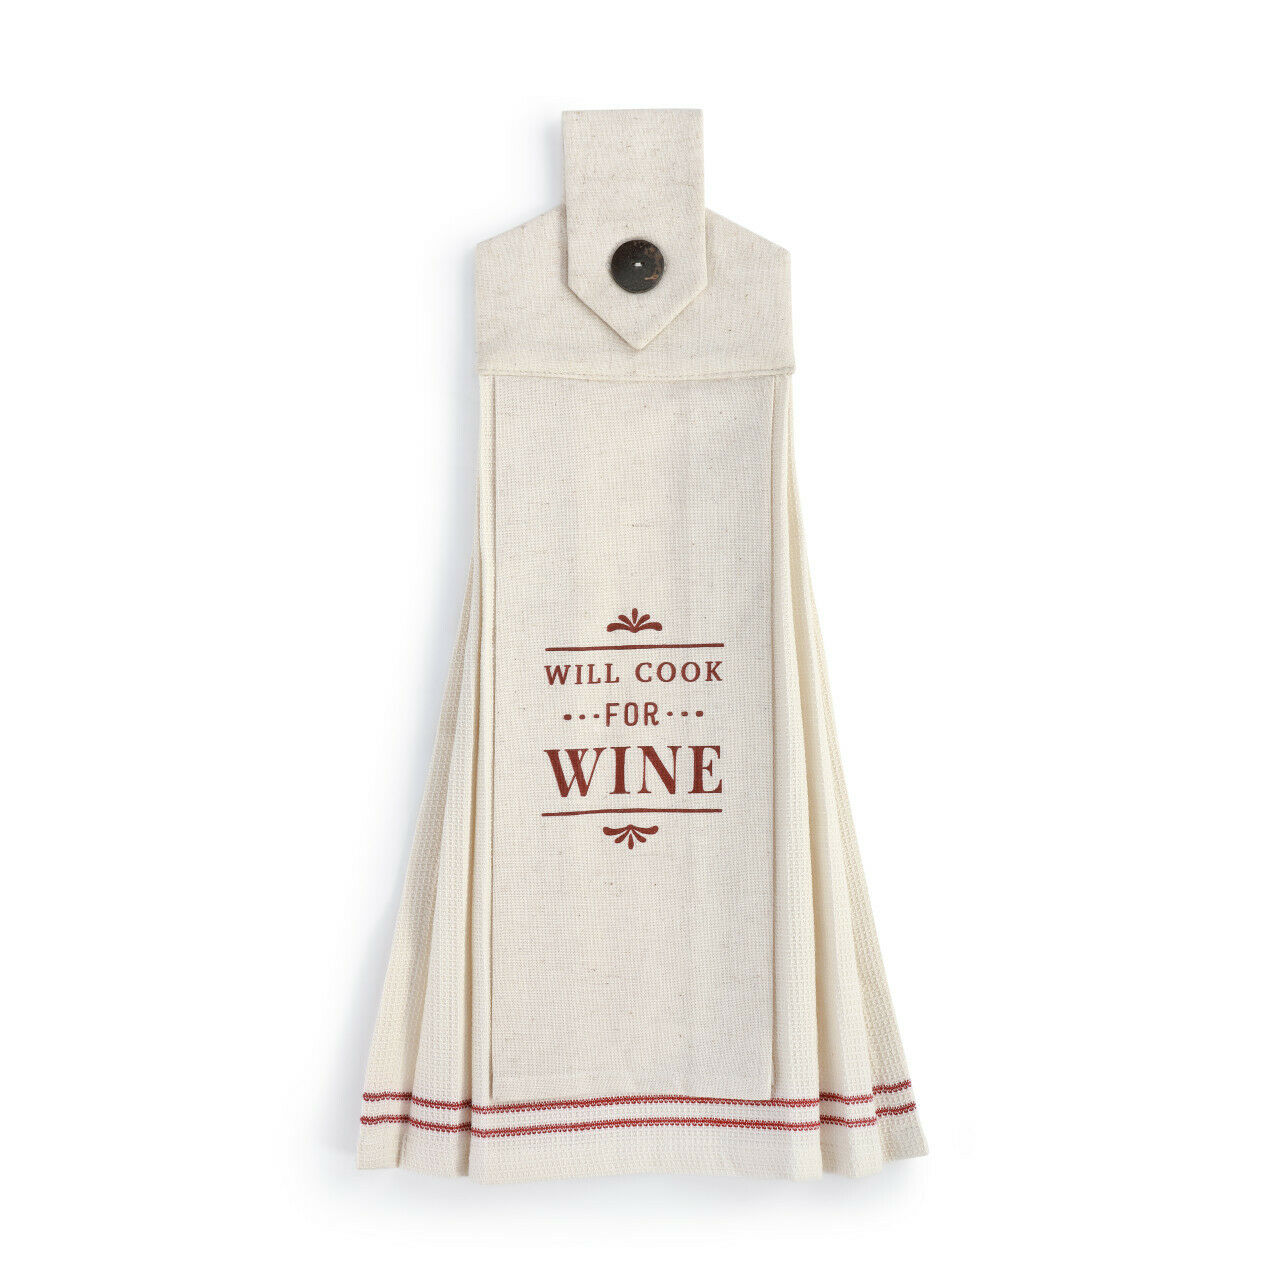 Will Cook For Wine Soft Cream 20 x 6 Cotton Fabric Button Loop Dish Tea Towel